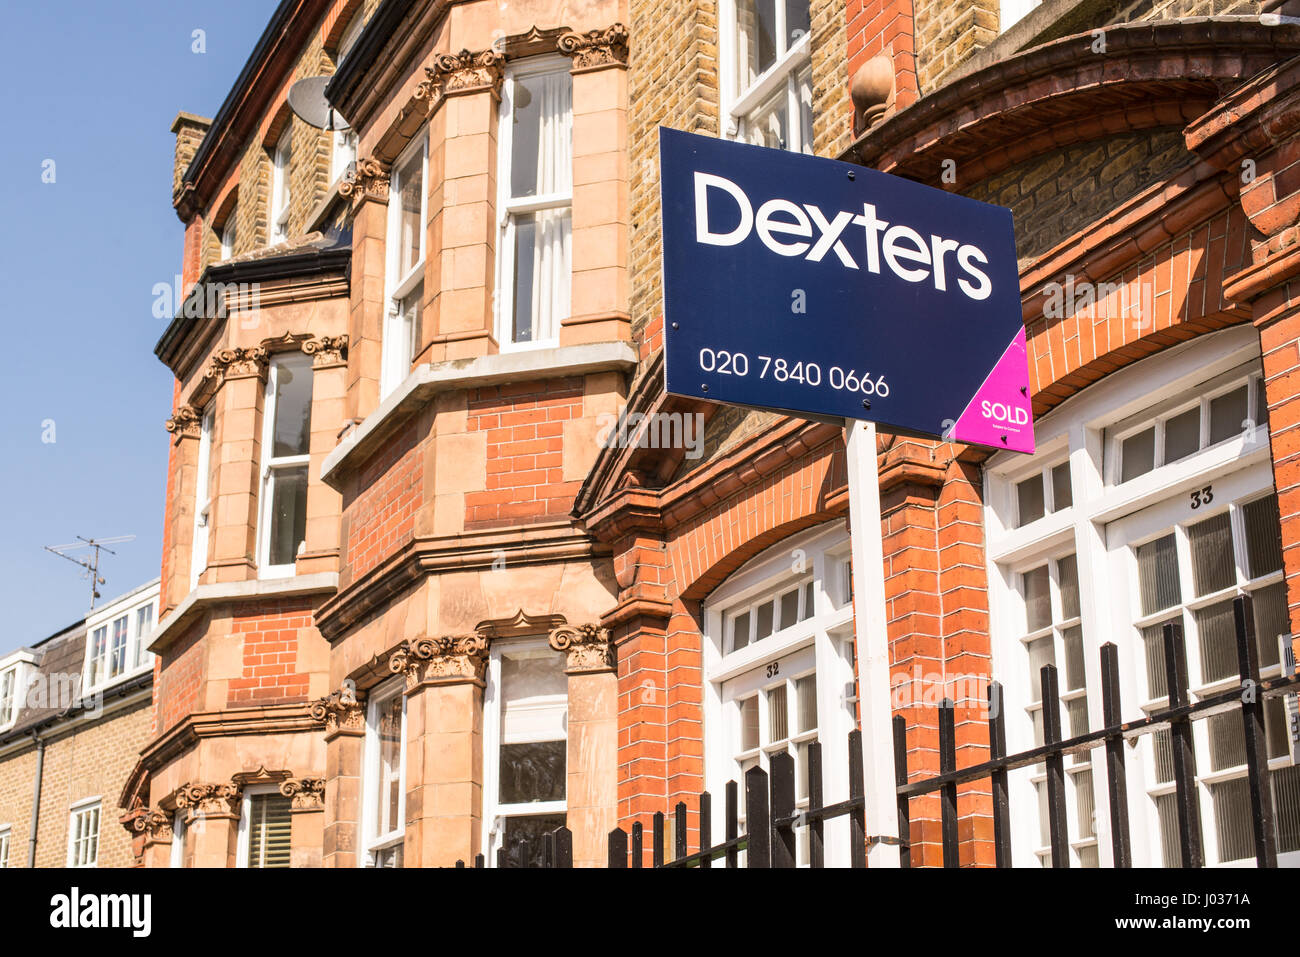 London, England, UK - April 2017: Estate agent sign outside a row of Victorian terraced houses in London, England, - Stock Image